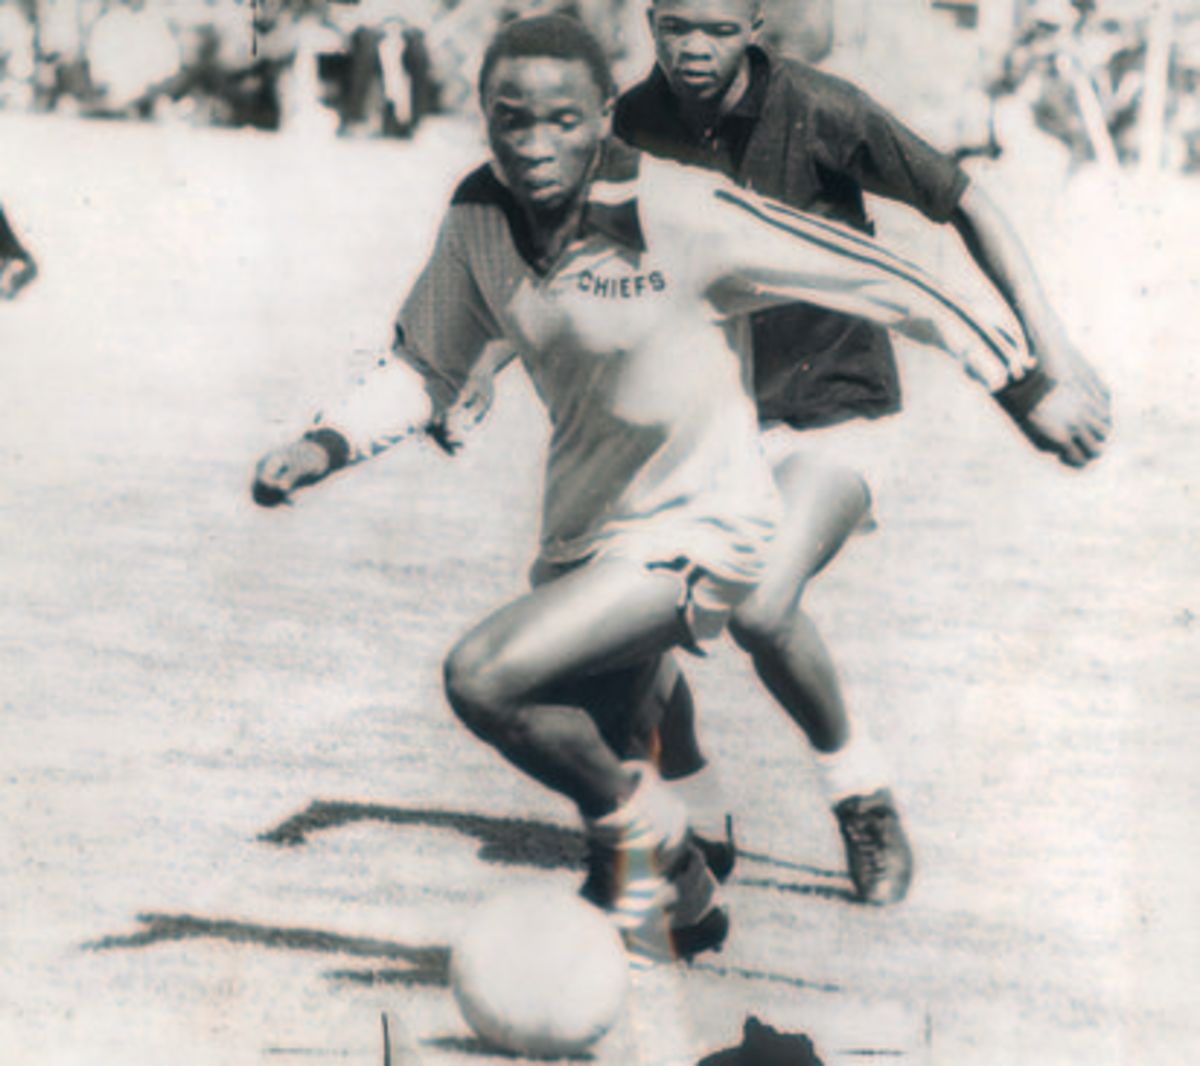 'Computer' of Kaizer Chiefs dribbles away from Tiger Motaung (6/2/77)